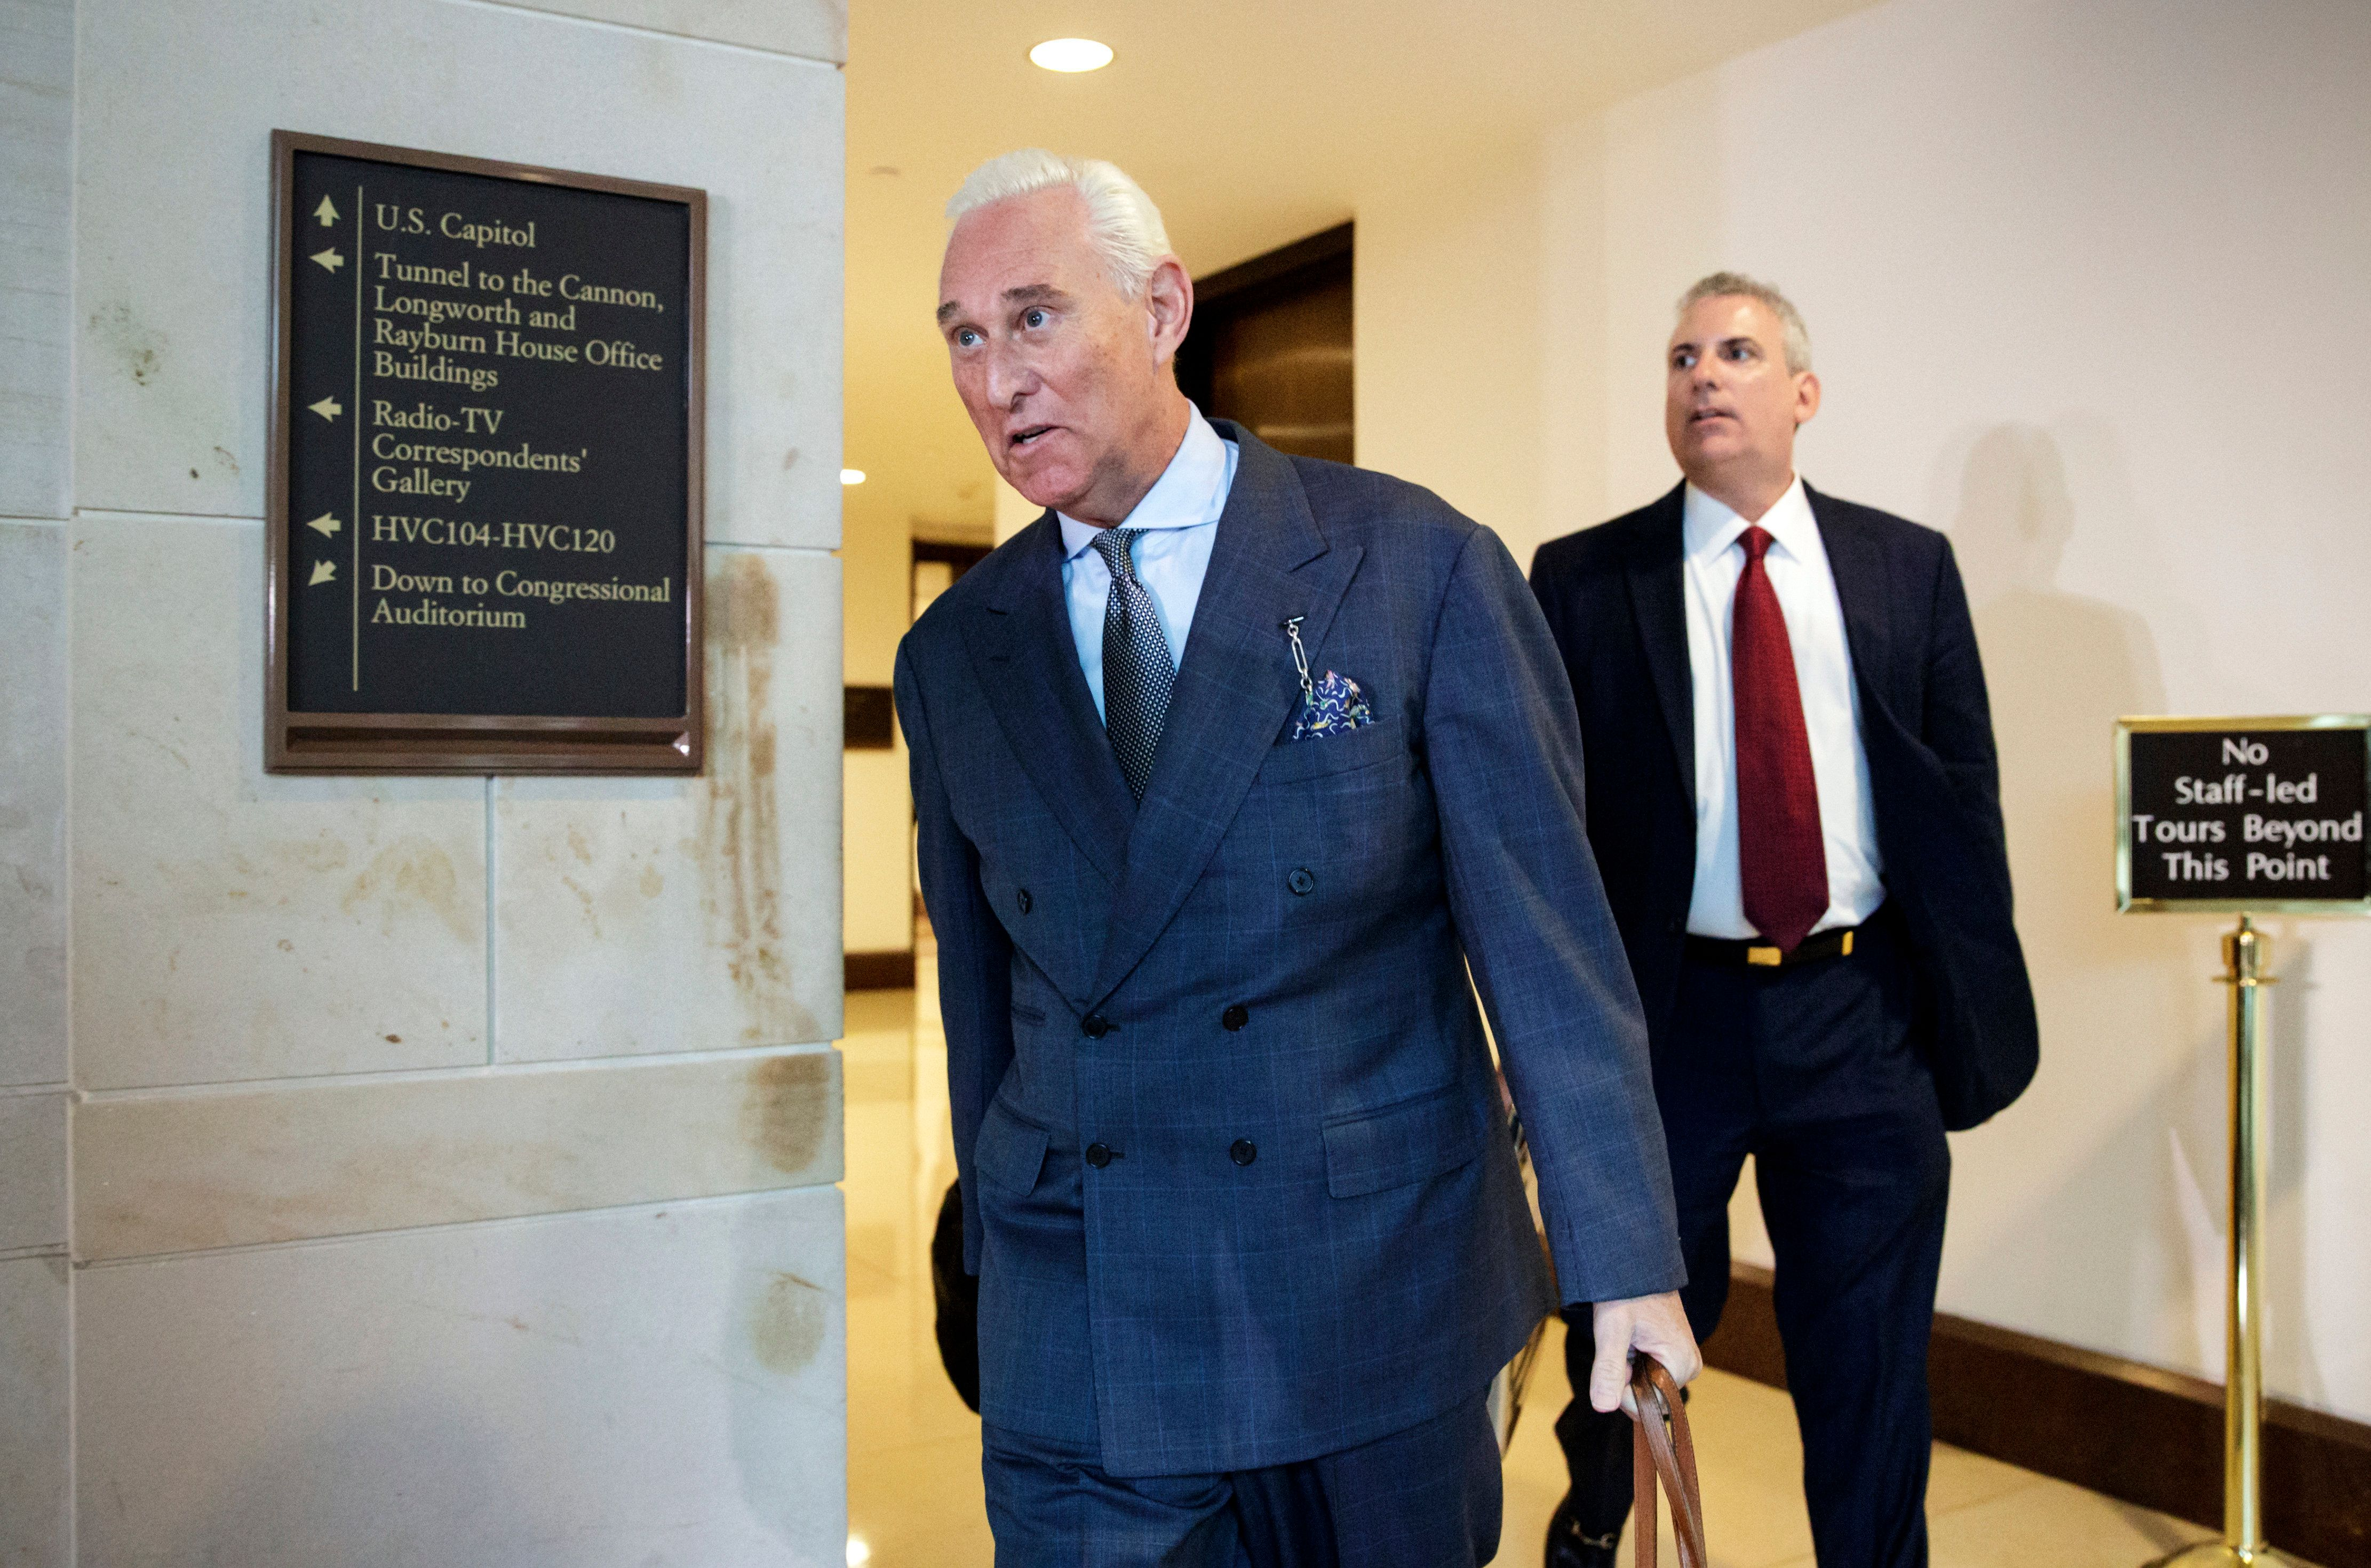 How WikiLeaks, Paul Manafort And Roger Stone Fit Into The Mueller Investigation